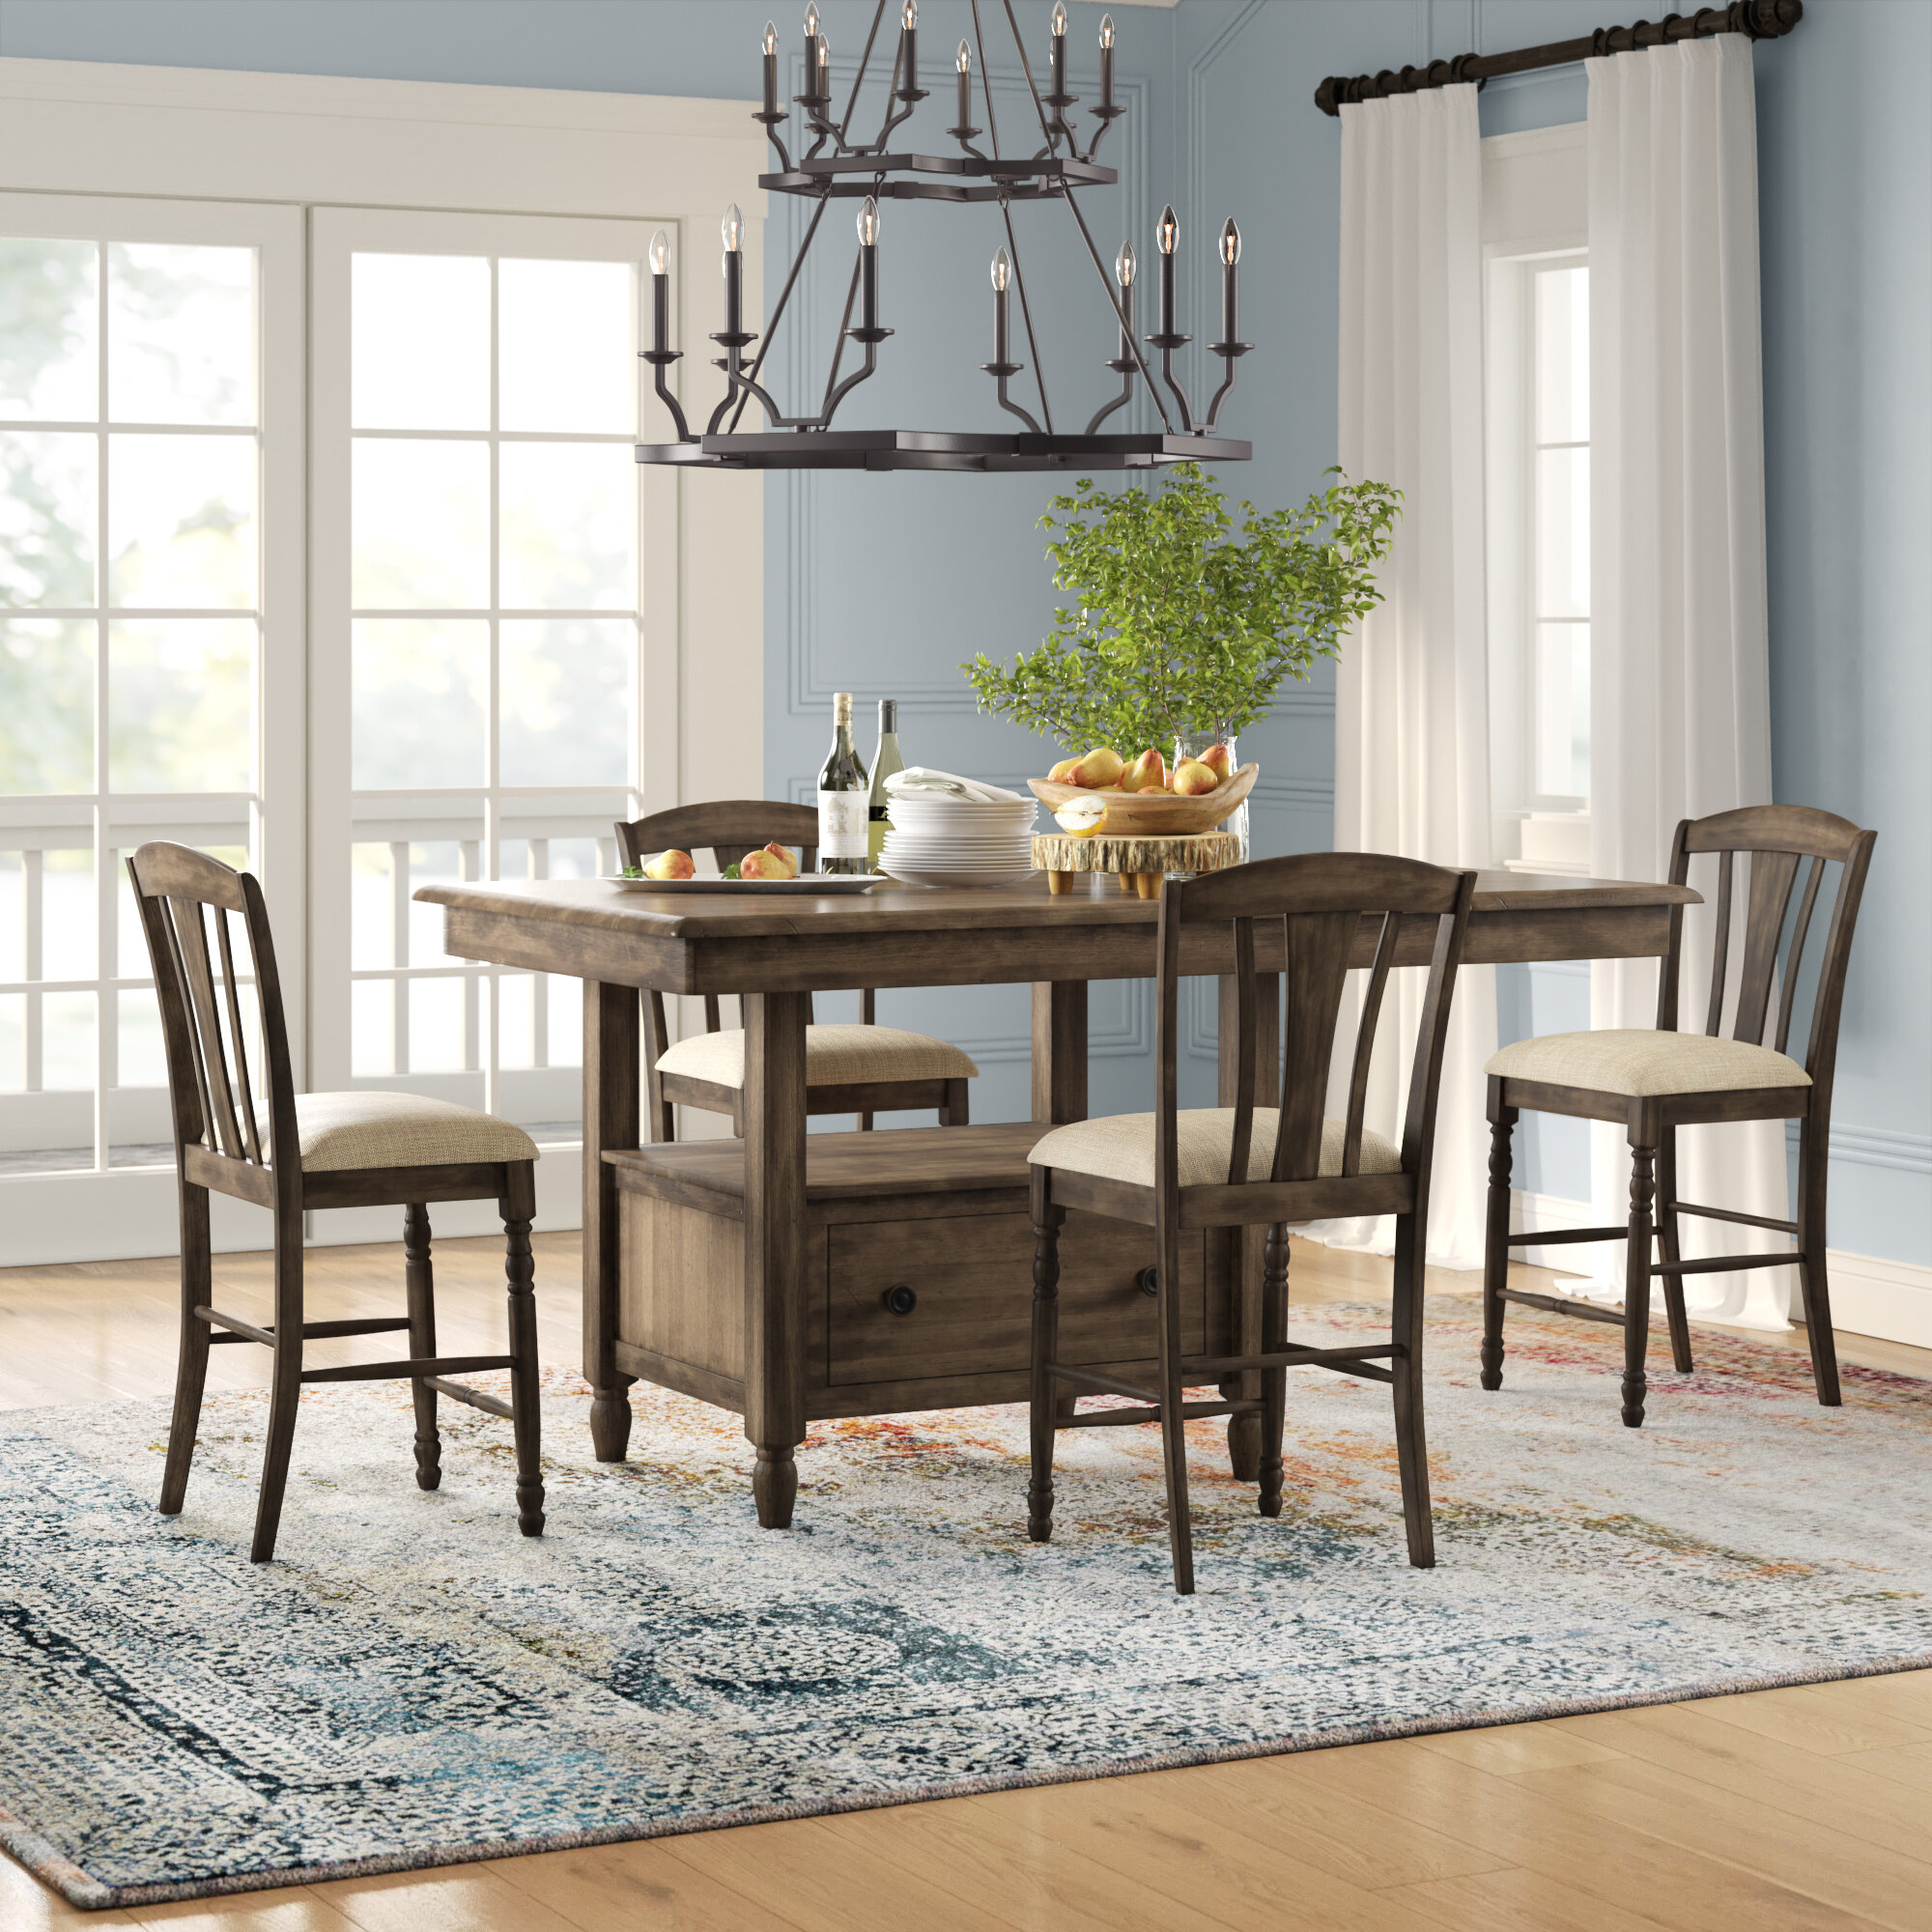 Perez 5 Piece Solid Wood Breakfast Nook Dining Set With Latest 5 Piece Breakfast Nook Dining Sets (View 8 of 20)